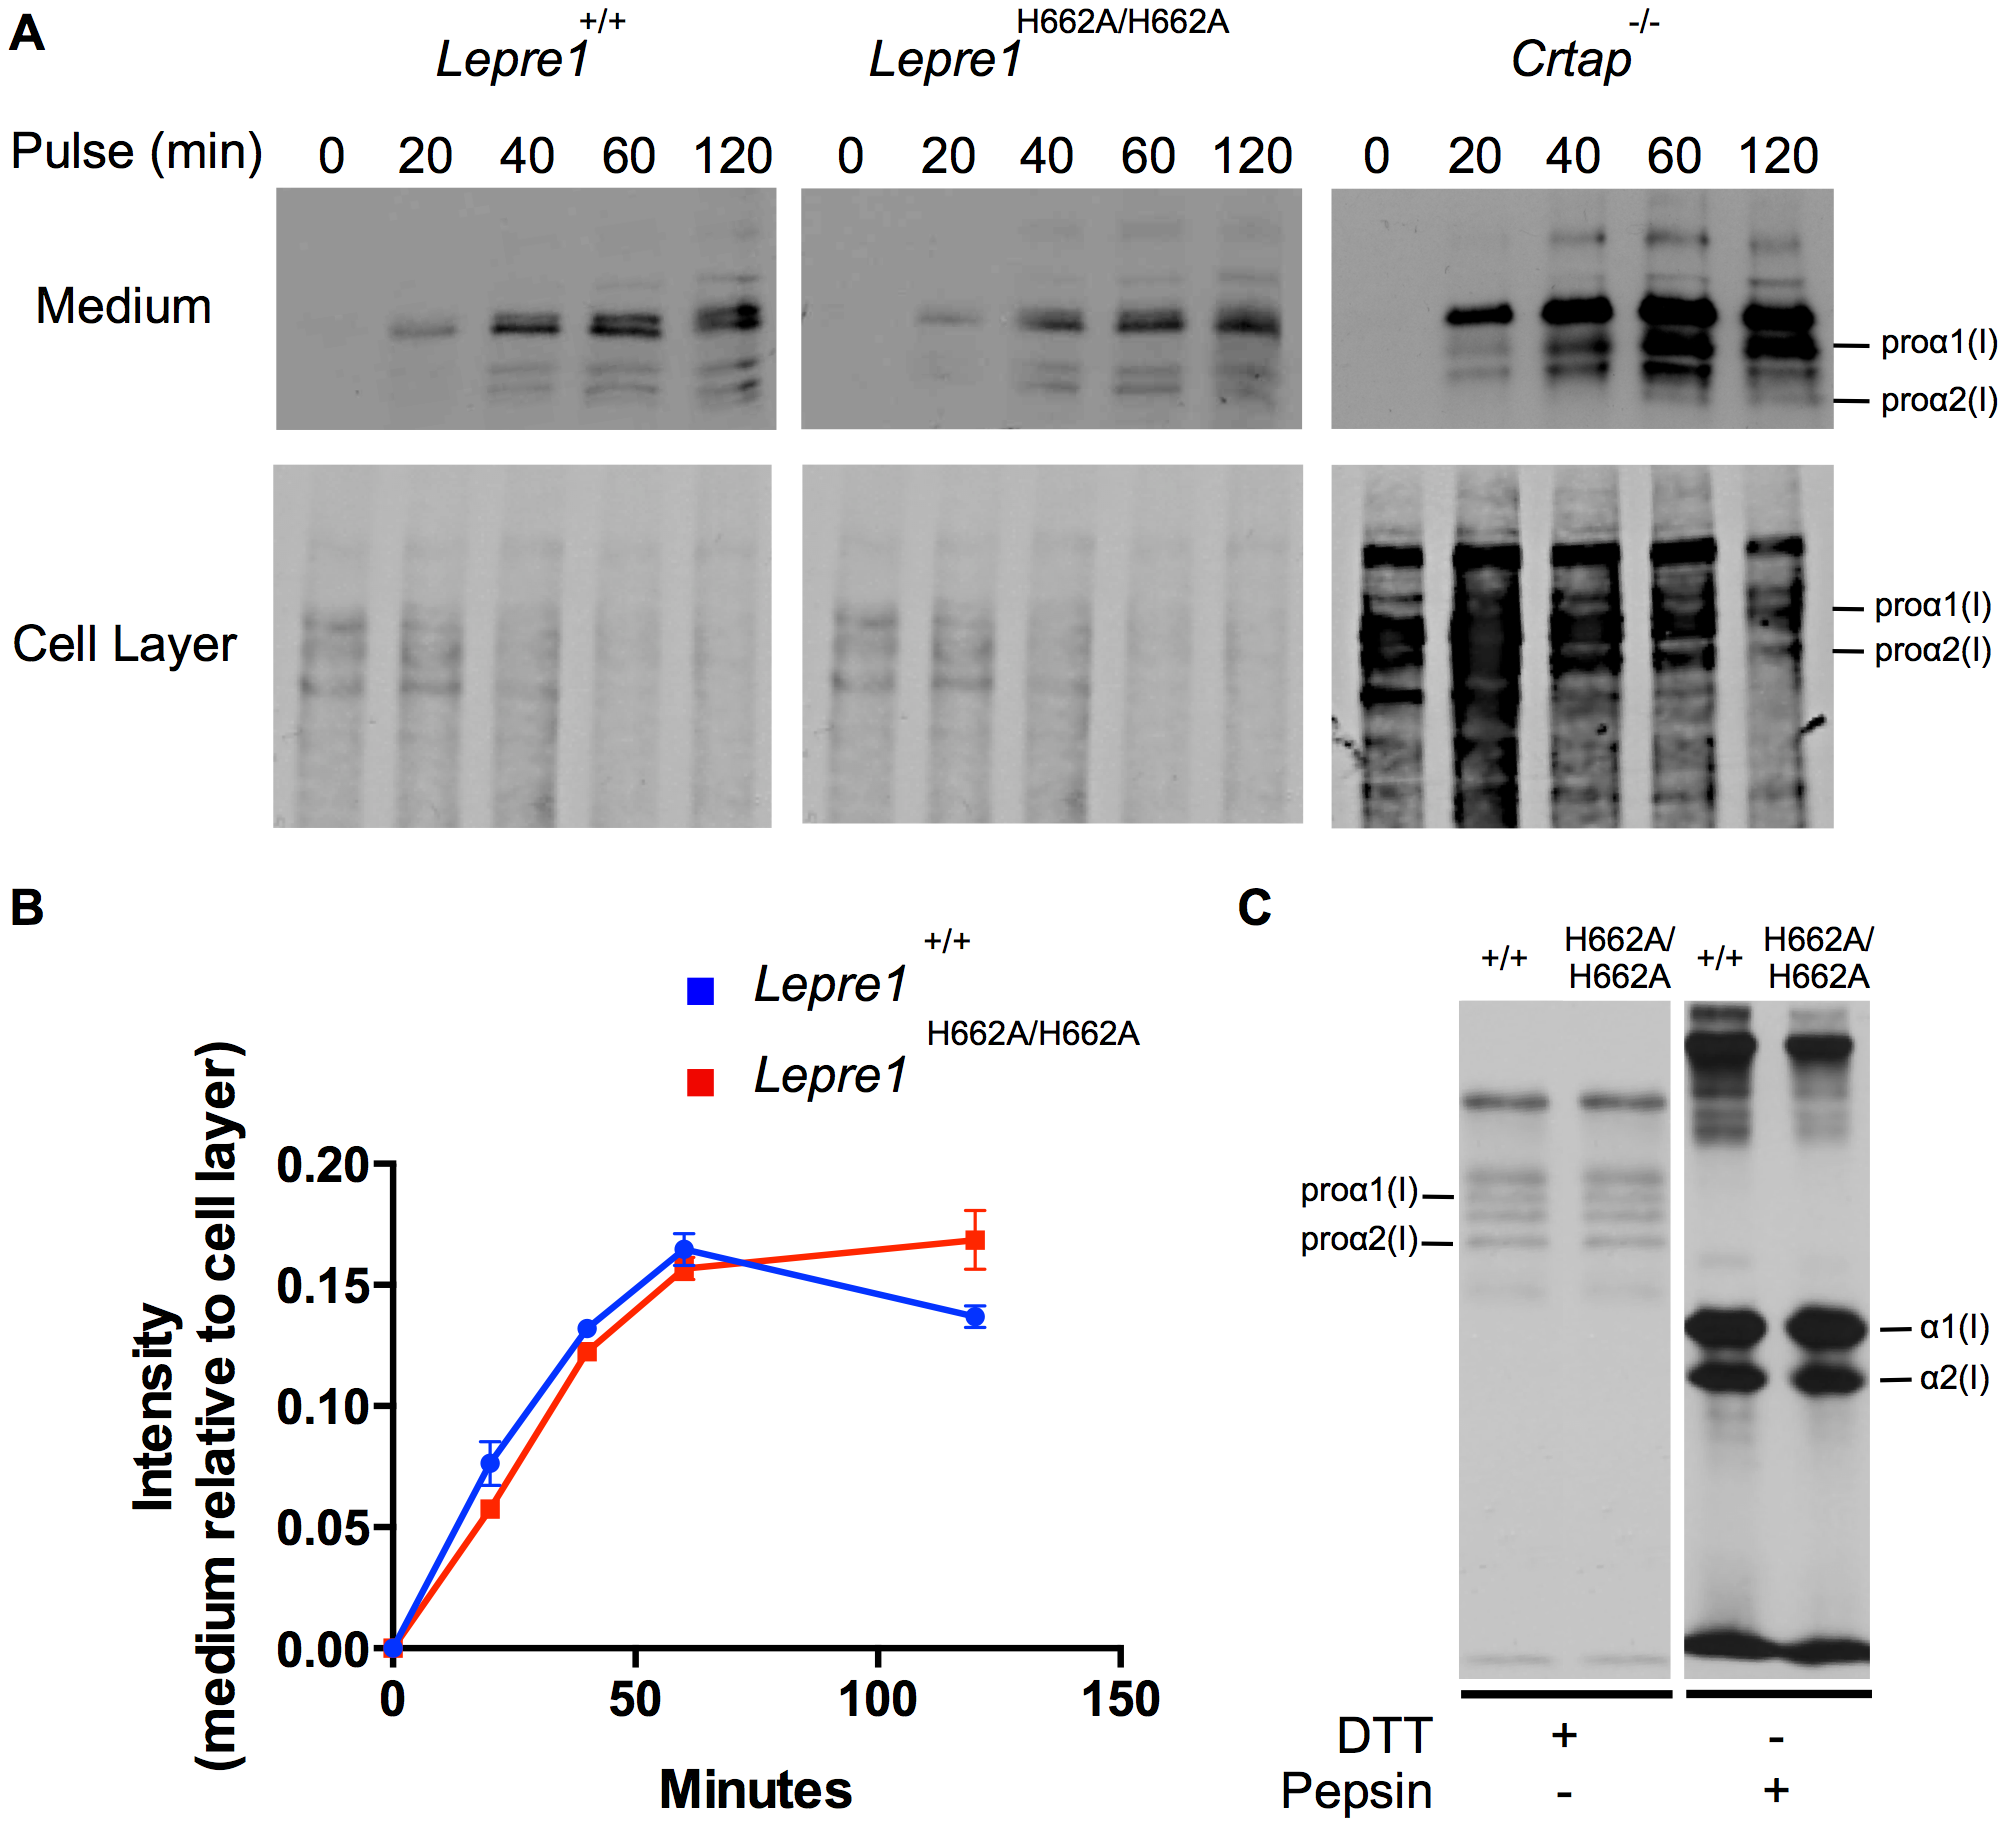 <i>Lepre1<sup>H662A/H662A</sup></i> fibroblast procollagen secretion rate and collagen modification is normal.